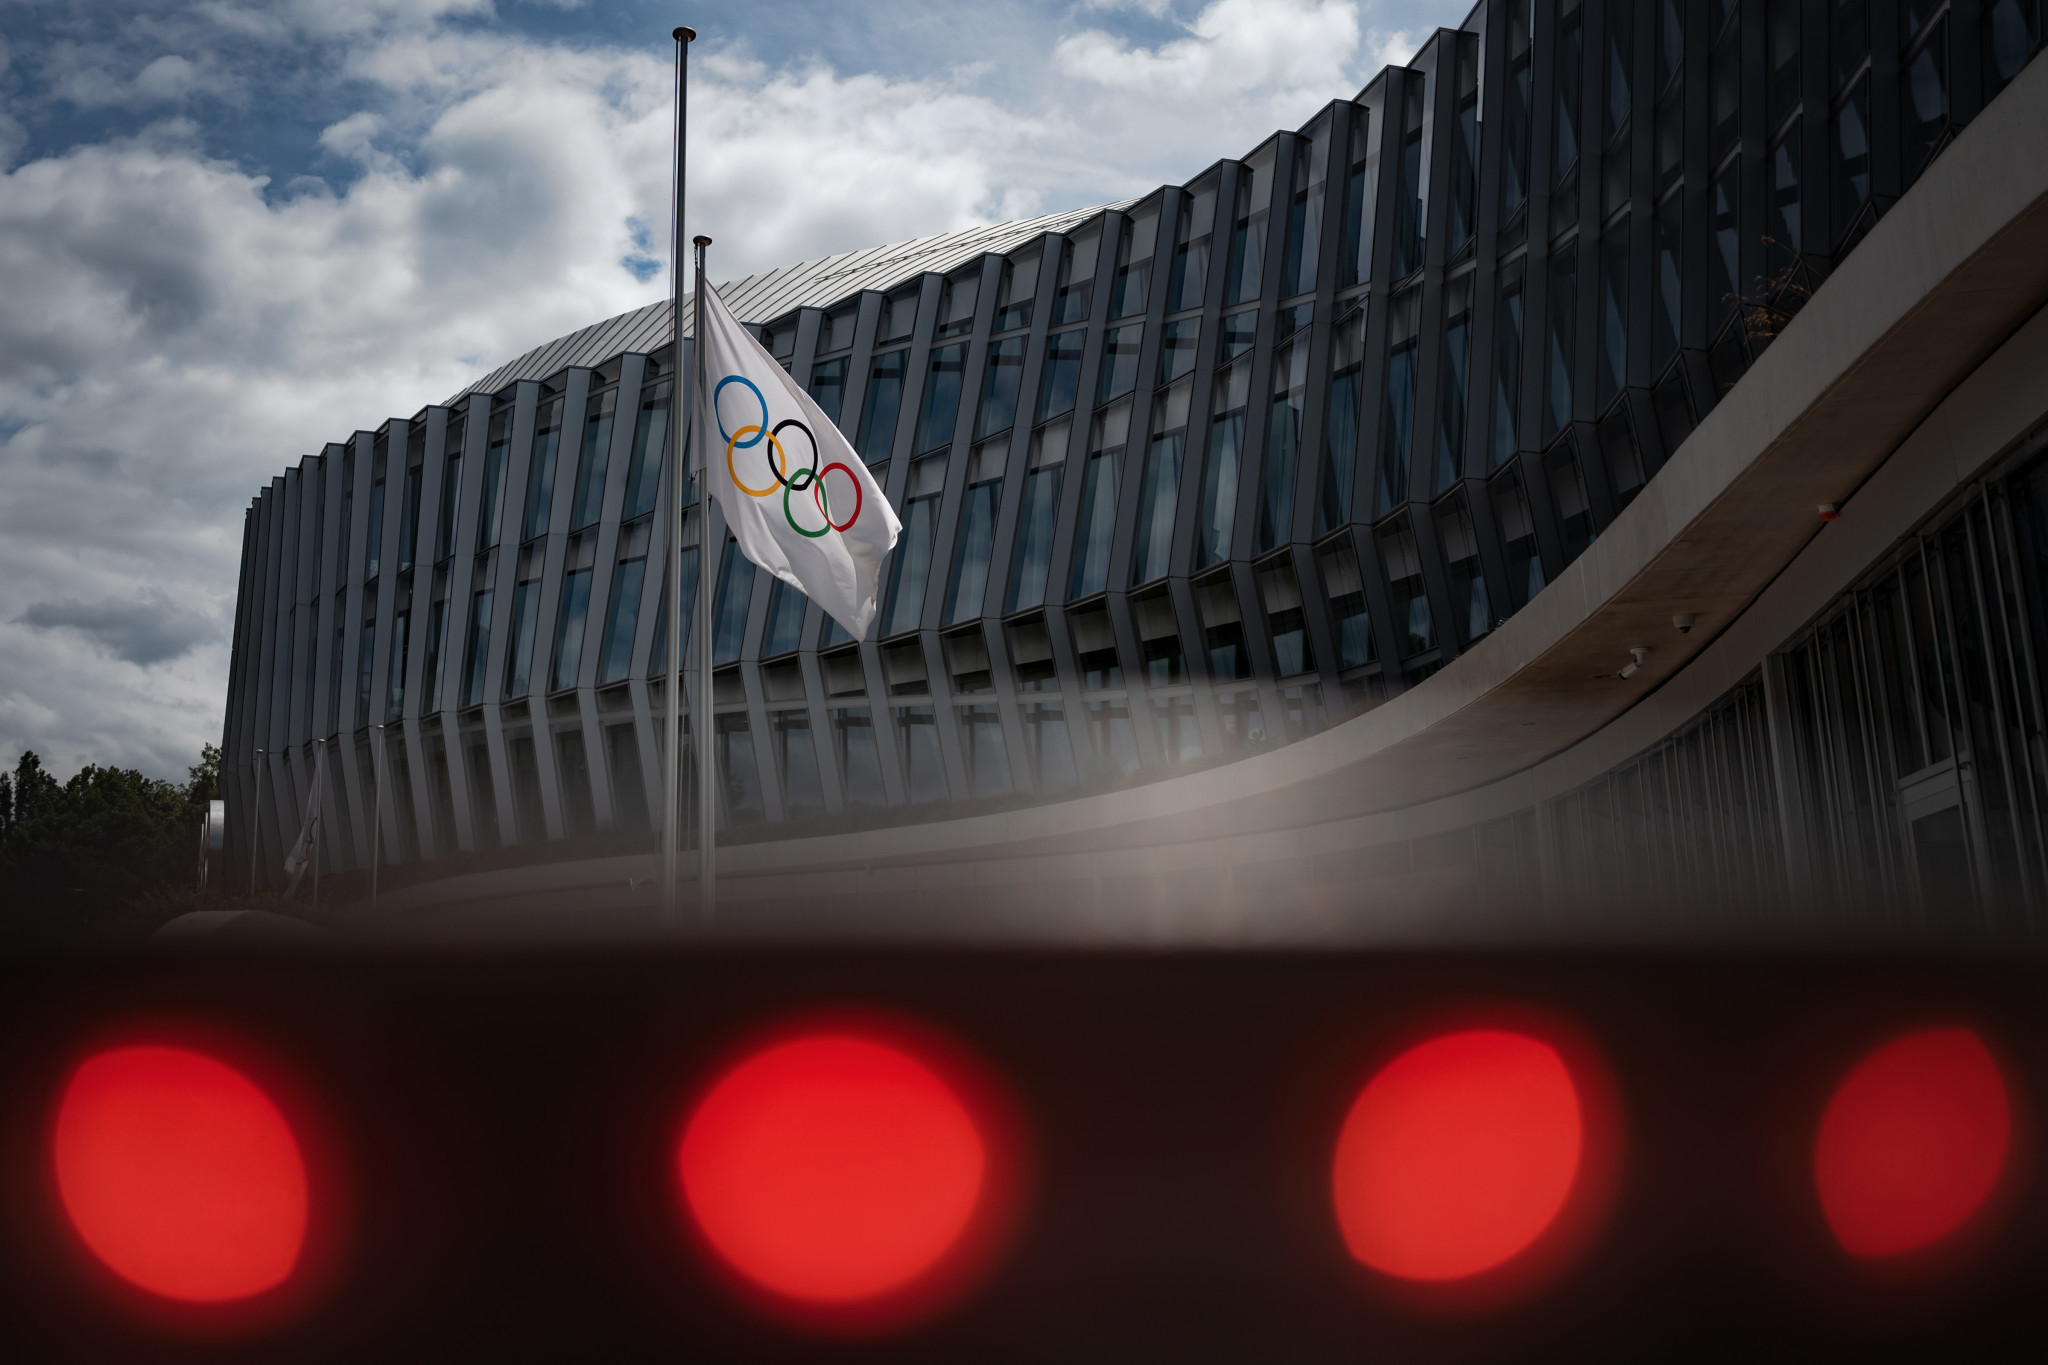 Tokyo 2020 cost cutting efforts expected to be assessed at IOC Executive Board meeting